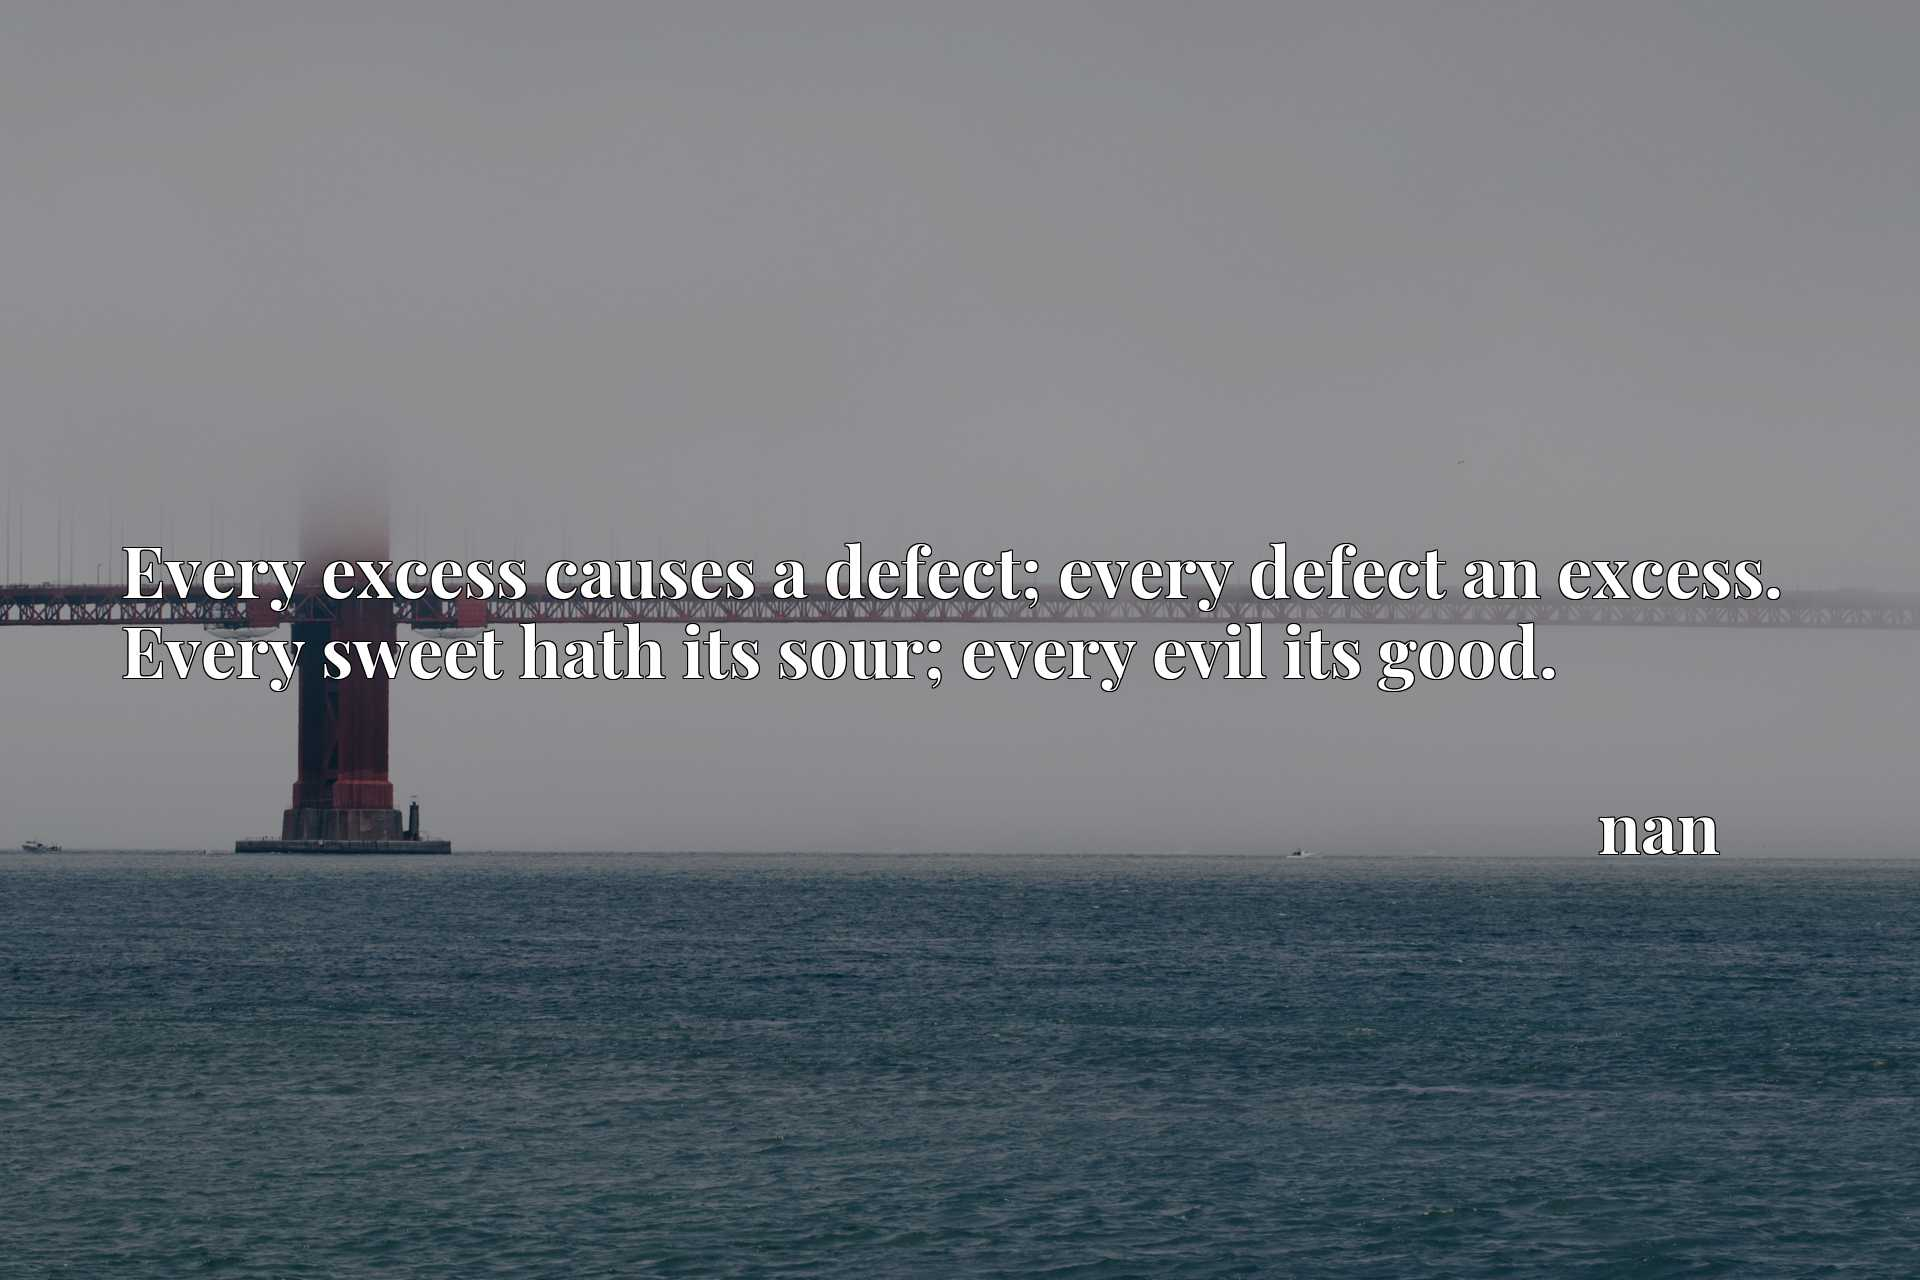 Every excess causes a defect; every defect an excess. Every sweet hath its sour; every evil its good.